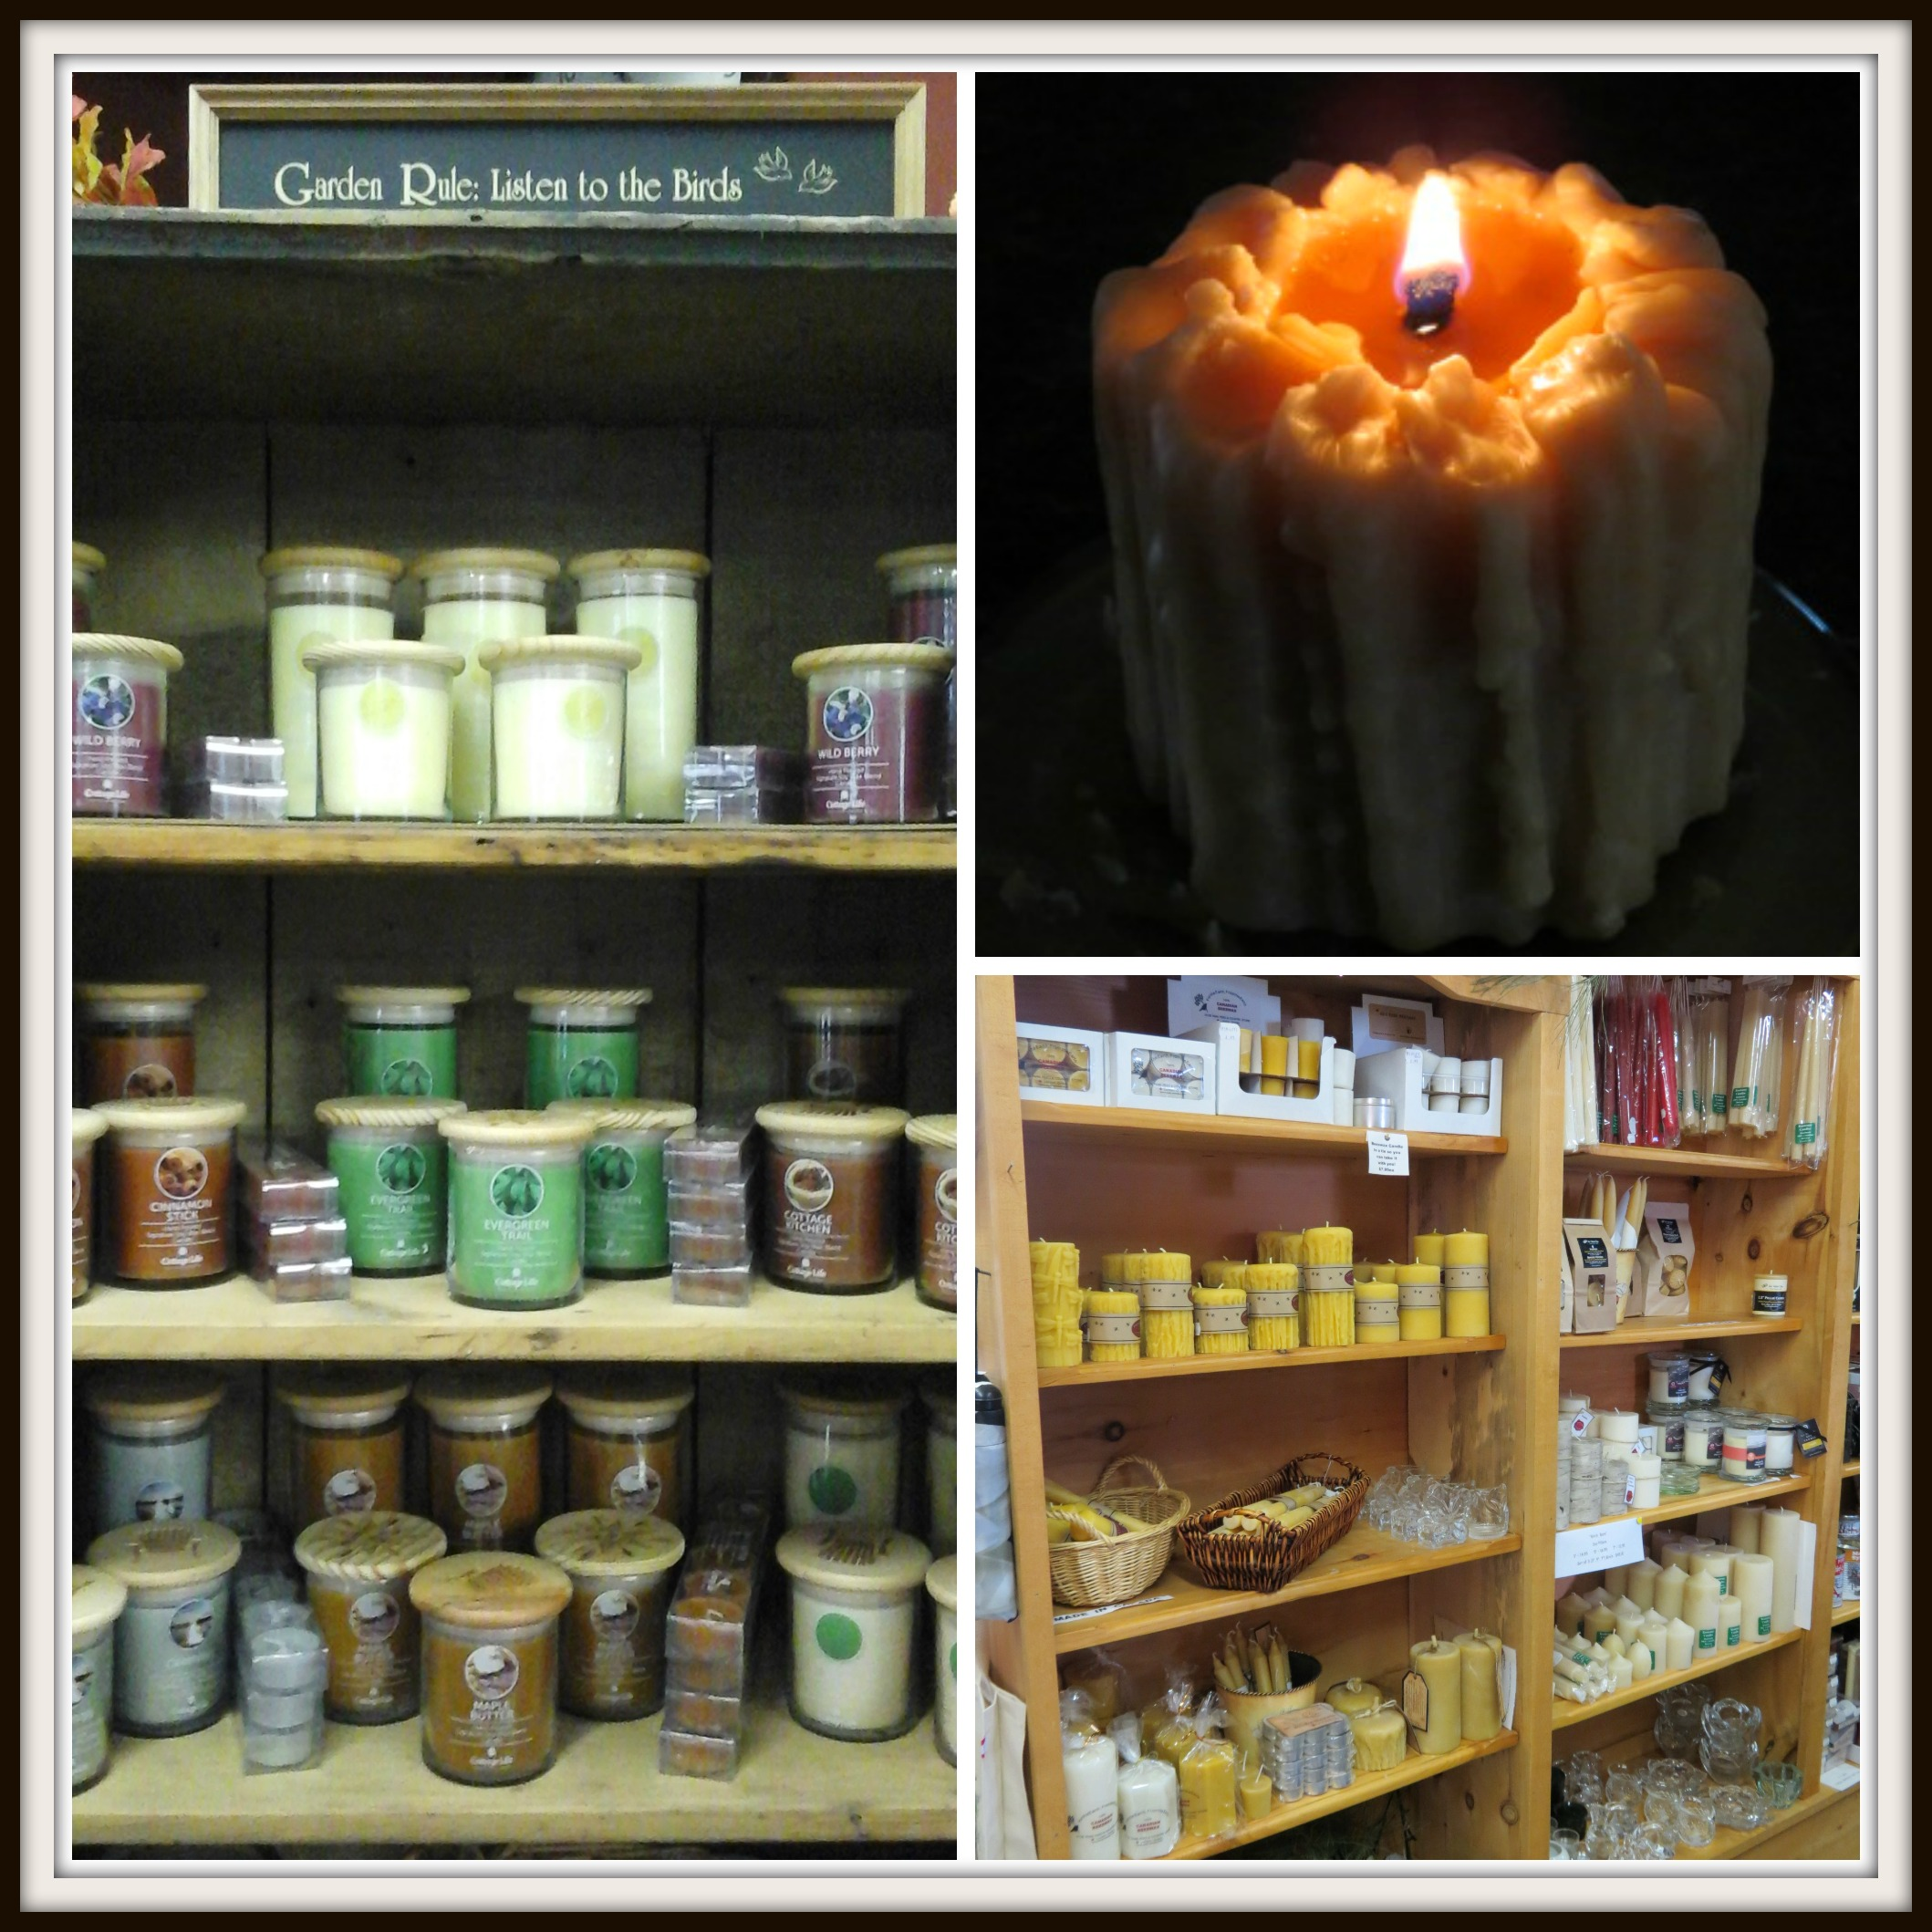 We offer an amazing selection of both BEESWAX CANDLES & SOY CANDLES!!